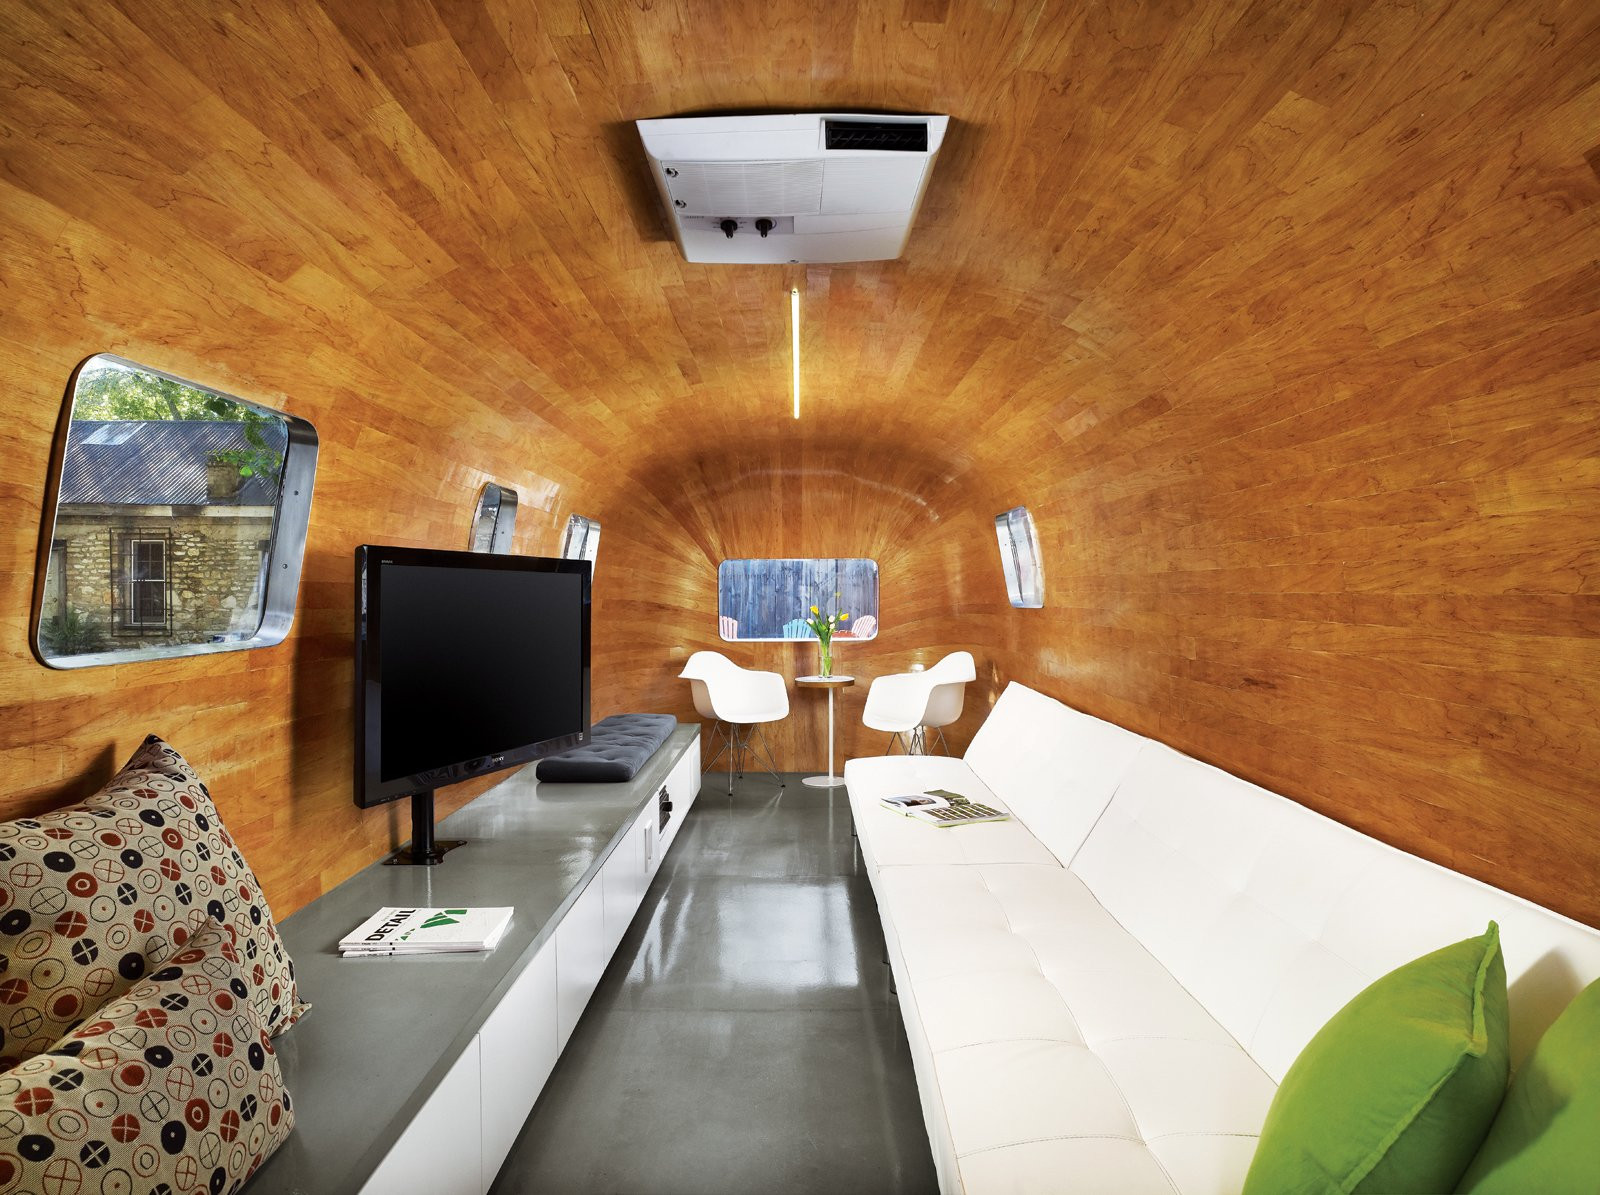 Interesting Airstream Interior Design 8 Ways to Renovate An Airstream Collection Of 8 S by